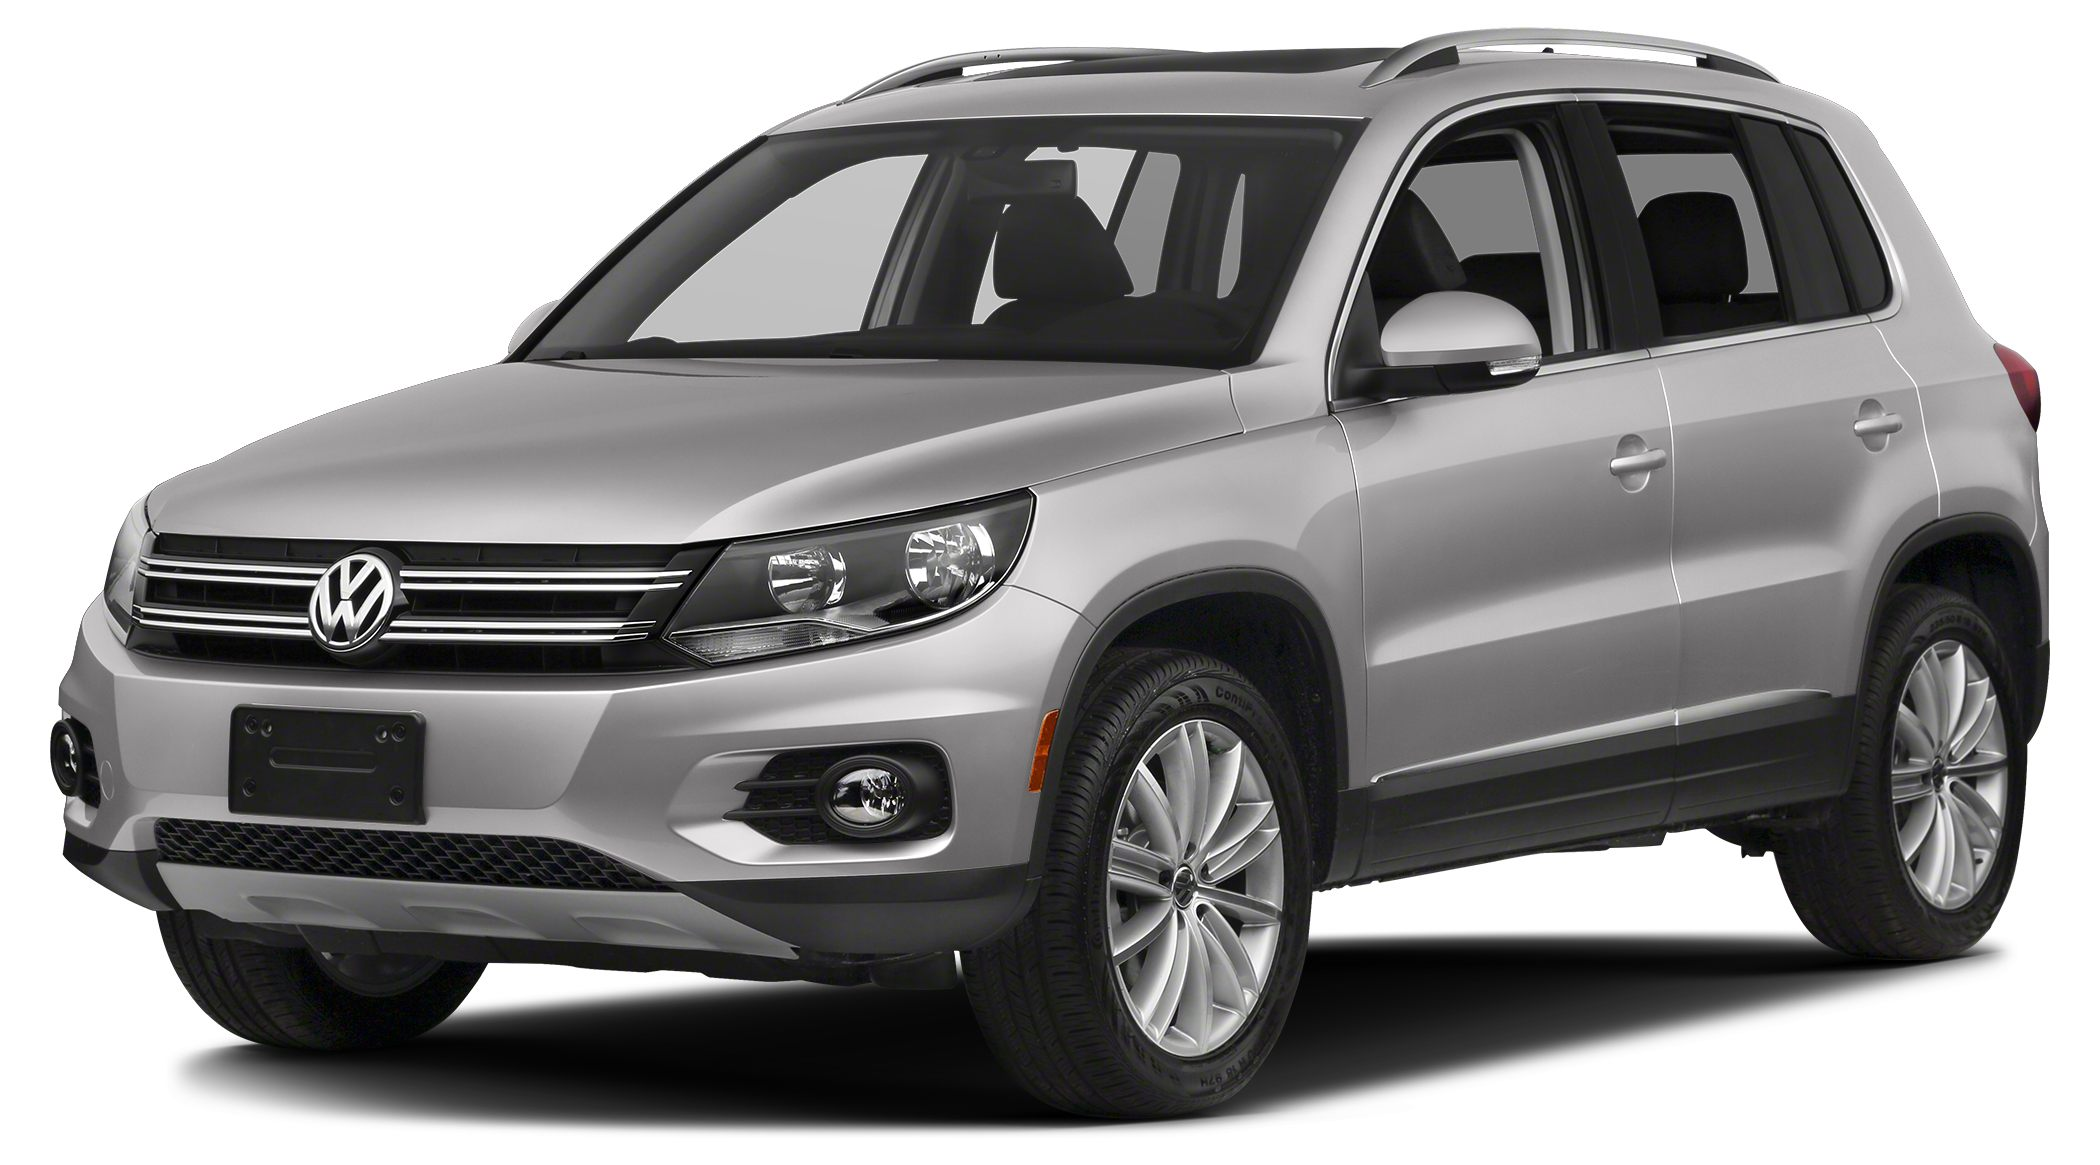 2015 Volkswagen Tiguan S  WHEN IT COMES TO EXCELLENCE IN USED CAR SALESYOU KNOWYOURE AT STAR